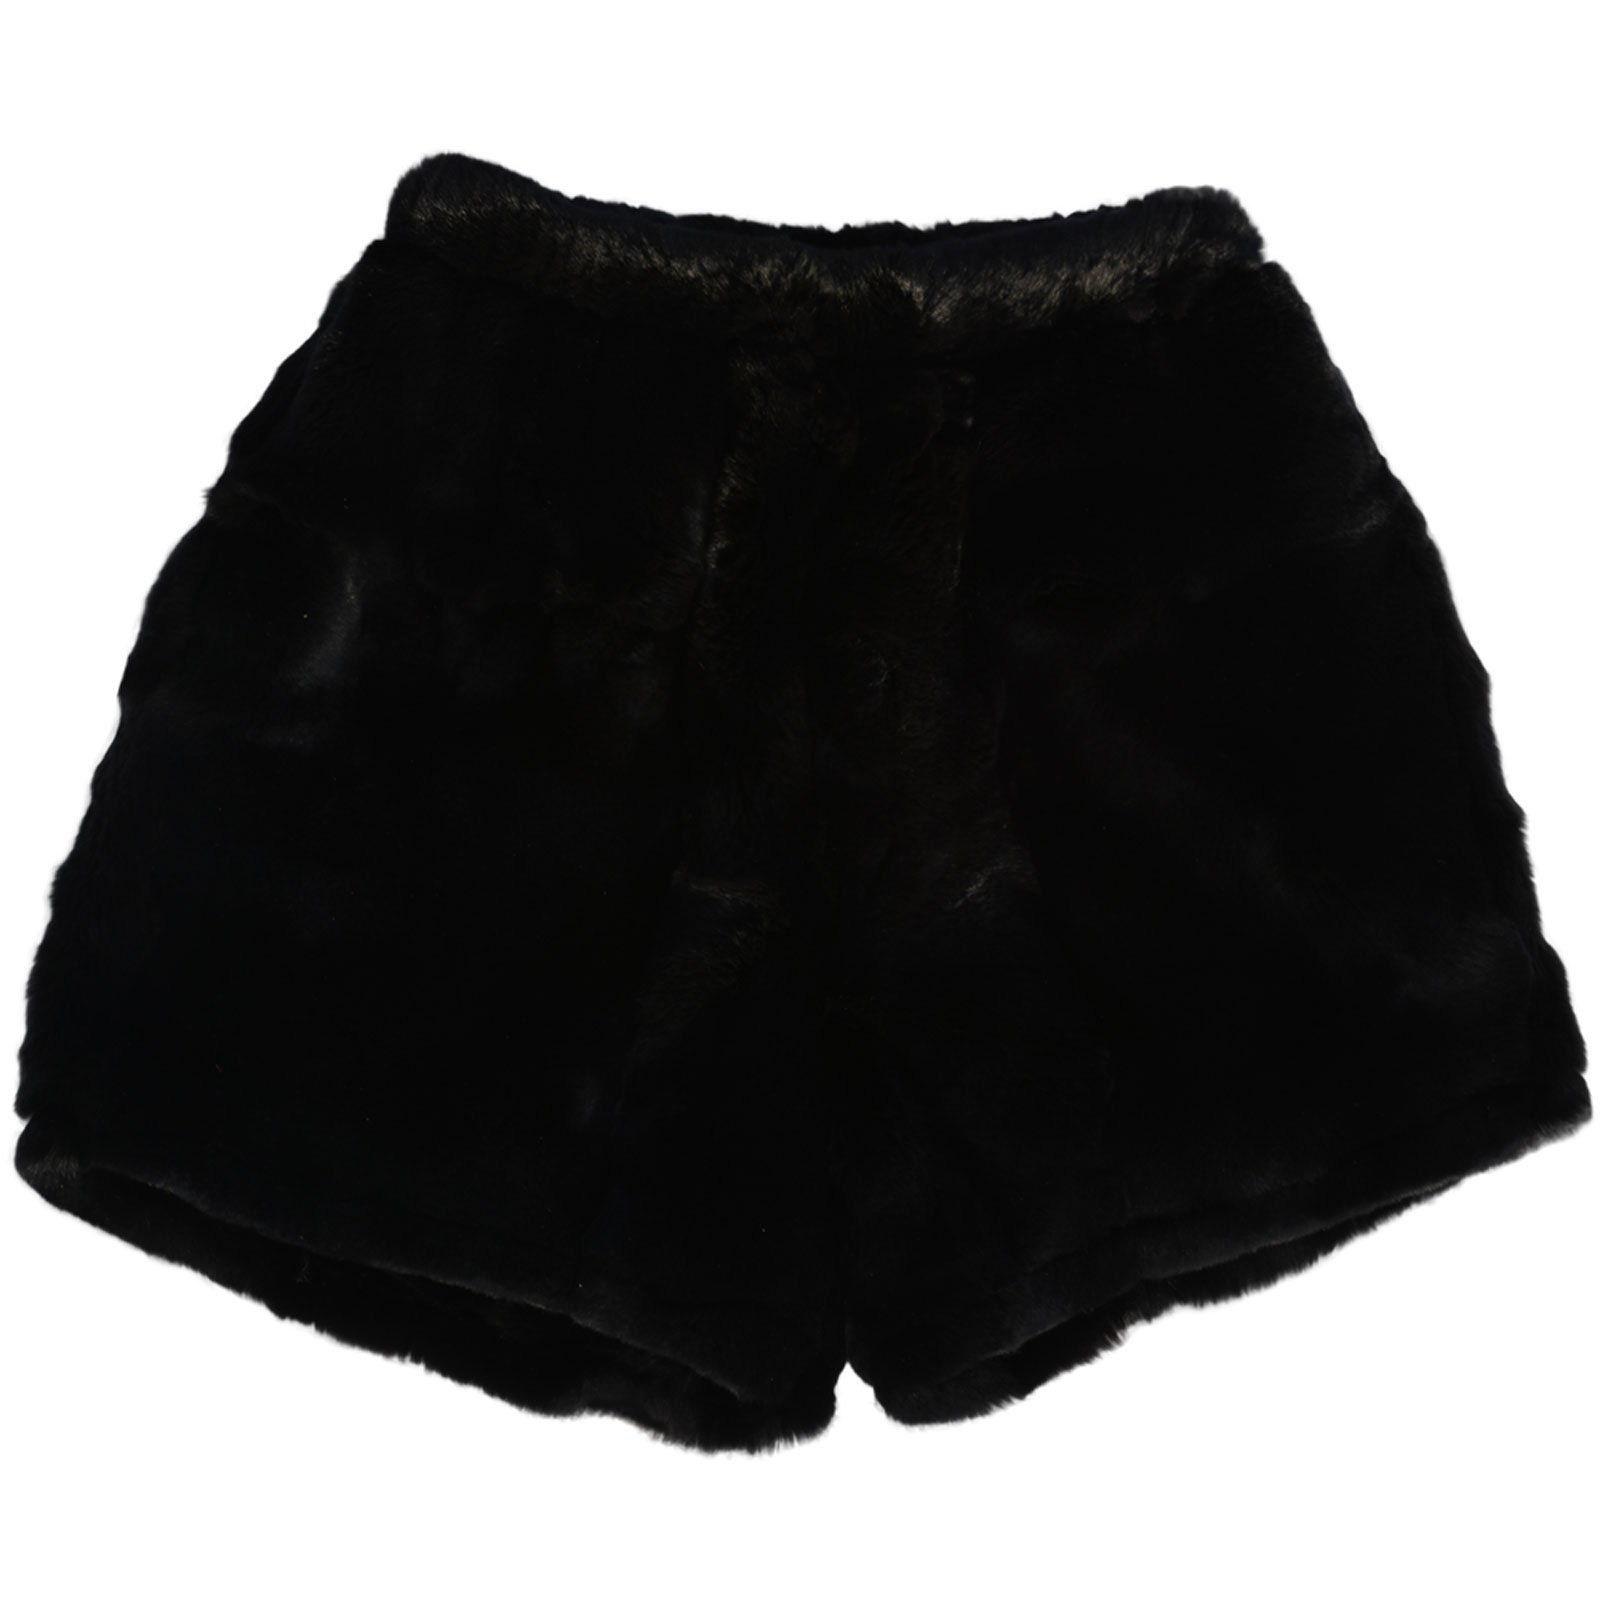 MinkgLove Rex Rabbit Boxer Shorts Briefs Underwear, Velvety Soft Plush Feel, Fur Lined Fly, Black, Hand Tailored, One Size - Single Sided Fur